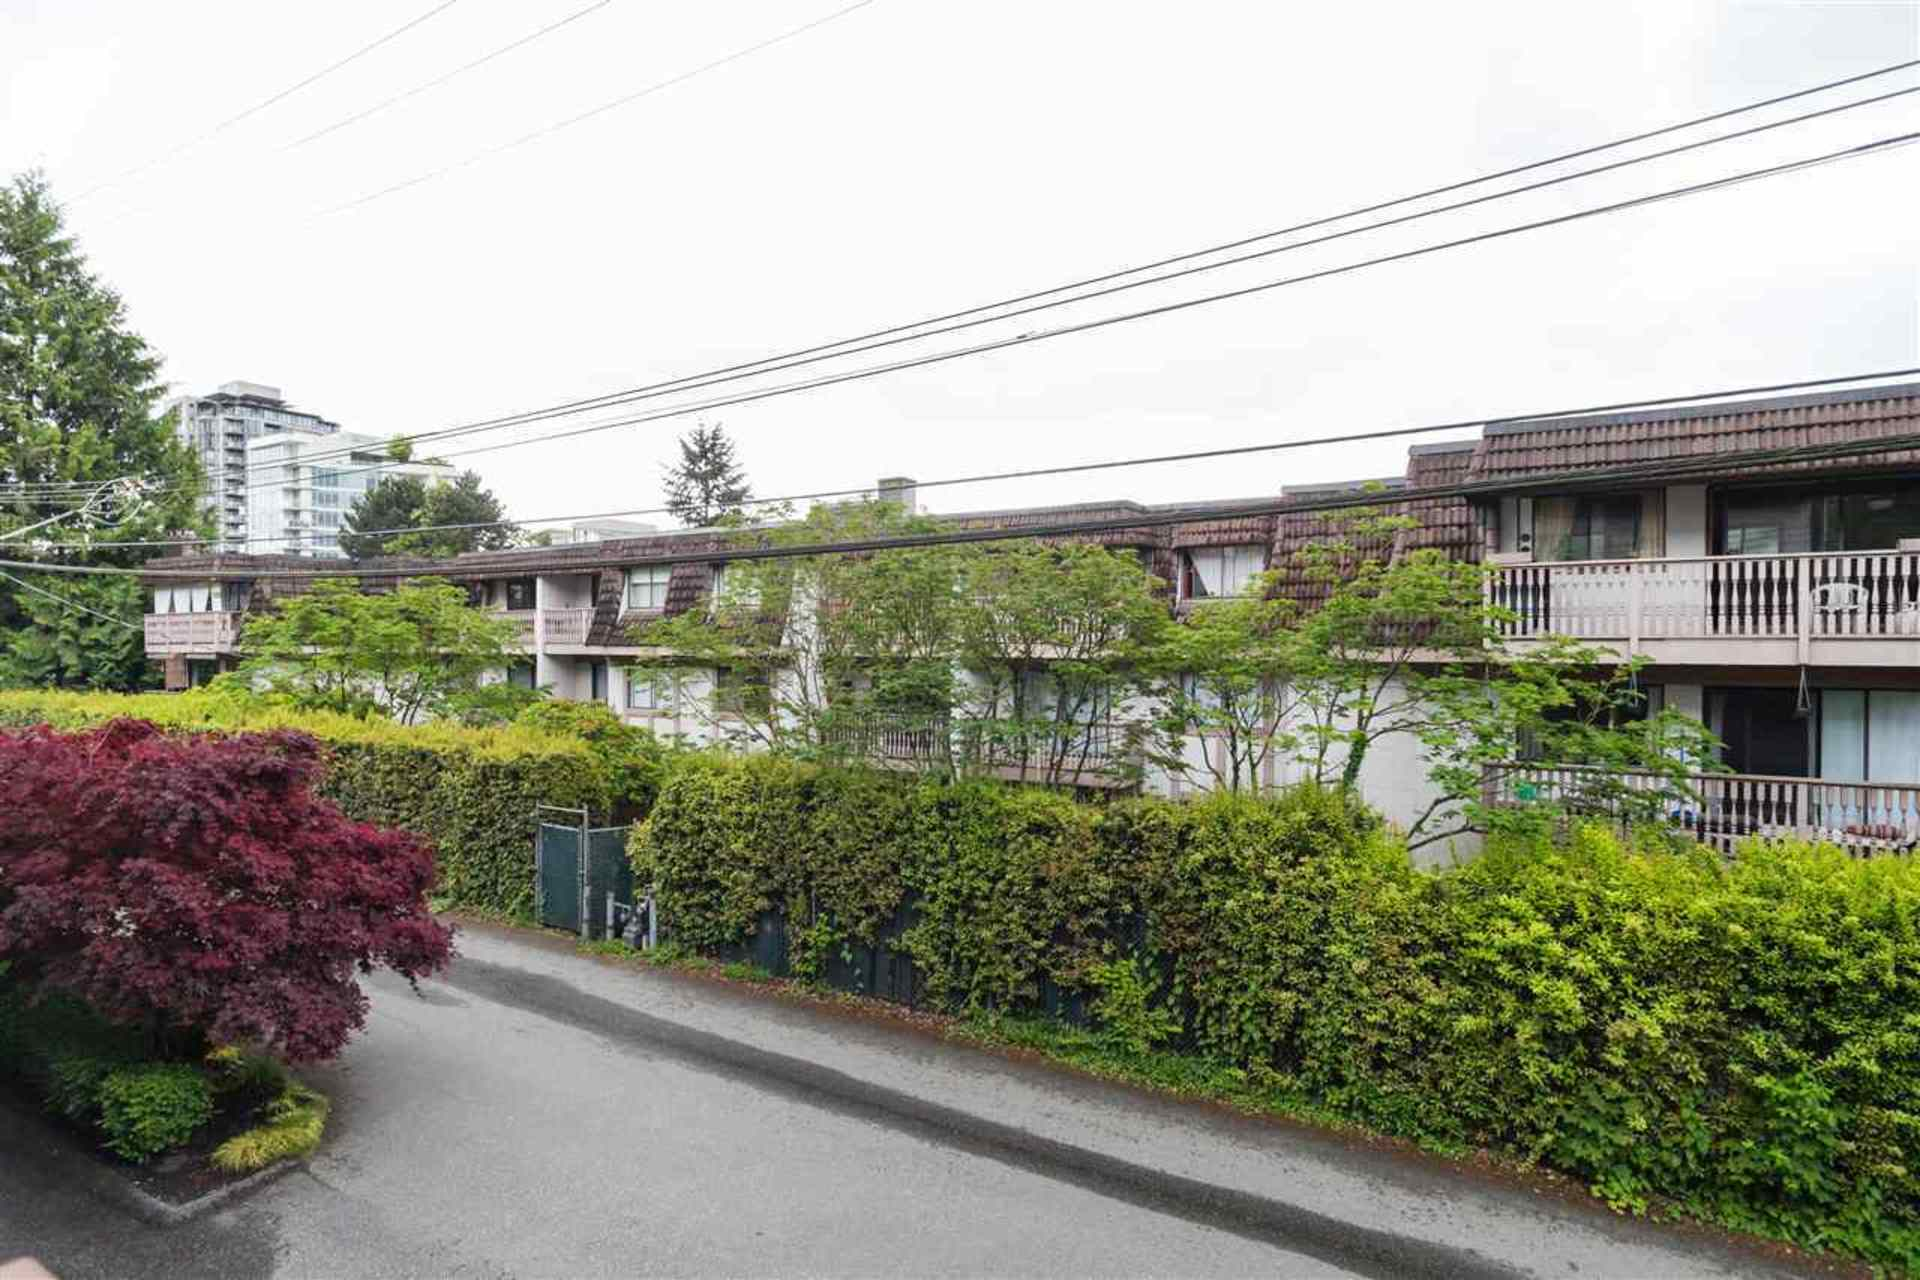 225-w-3rd-street-lower-lonsdale-north-vancouver-21 at 103 - 225 W 3rd Street, Lower Lonsdale, North Vancouver